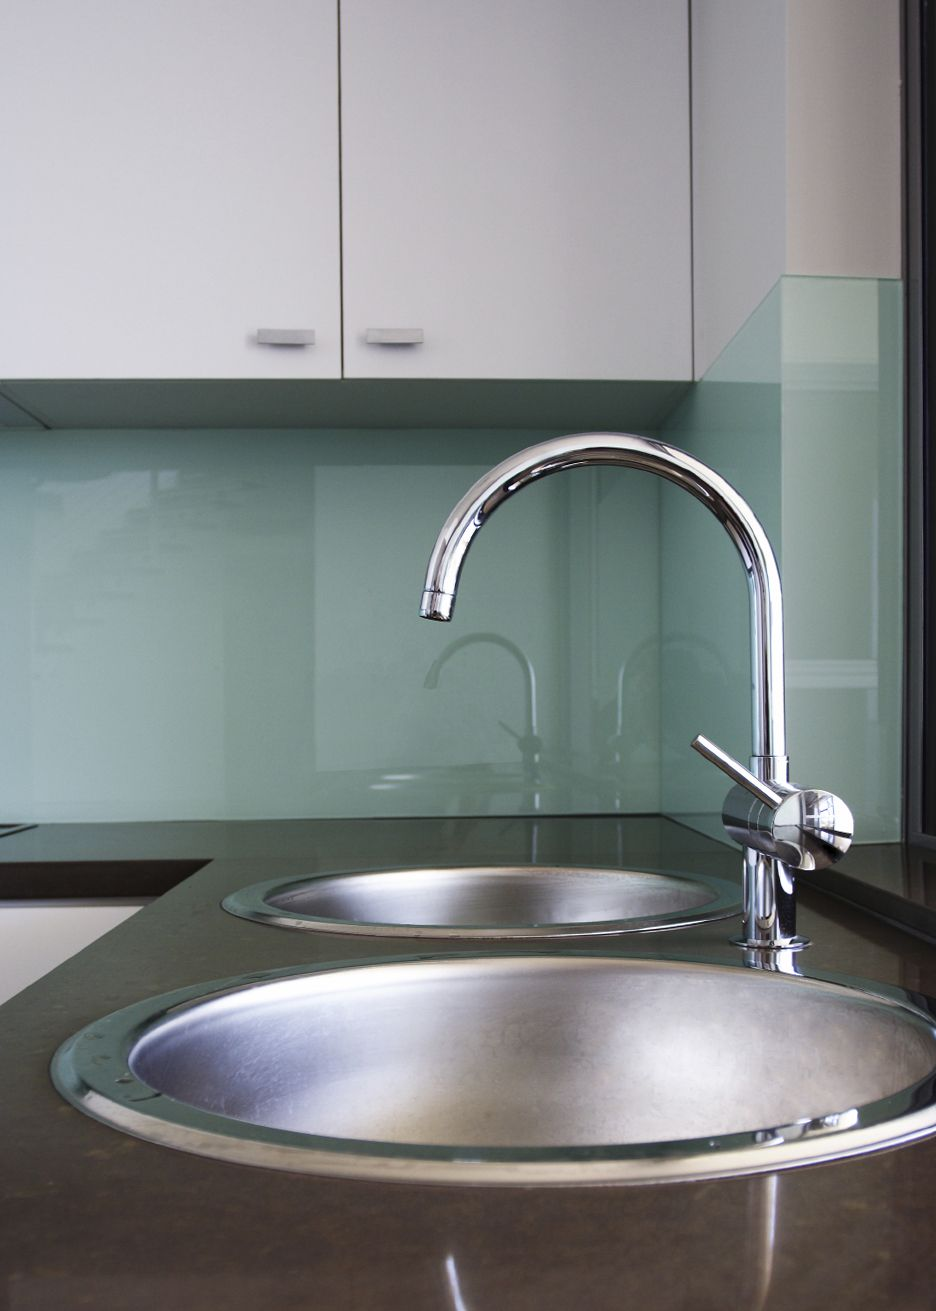 No Grout Backsplash Ideas Part - 46: ***Glass Backsplash No Grout. Use Starfire Glass To Eliminate Green Cast.